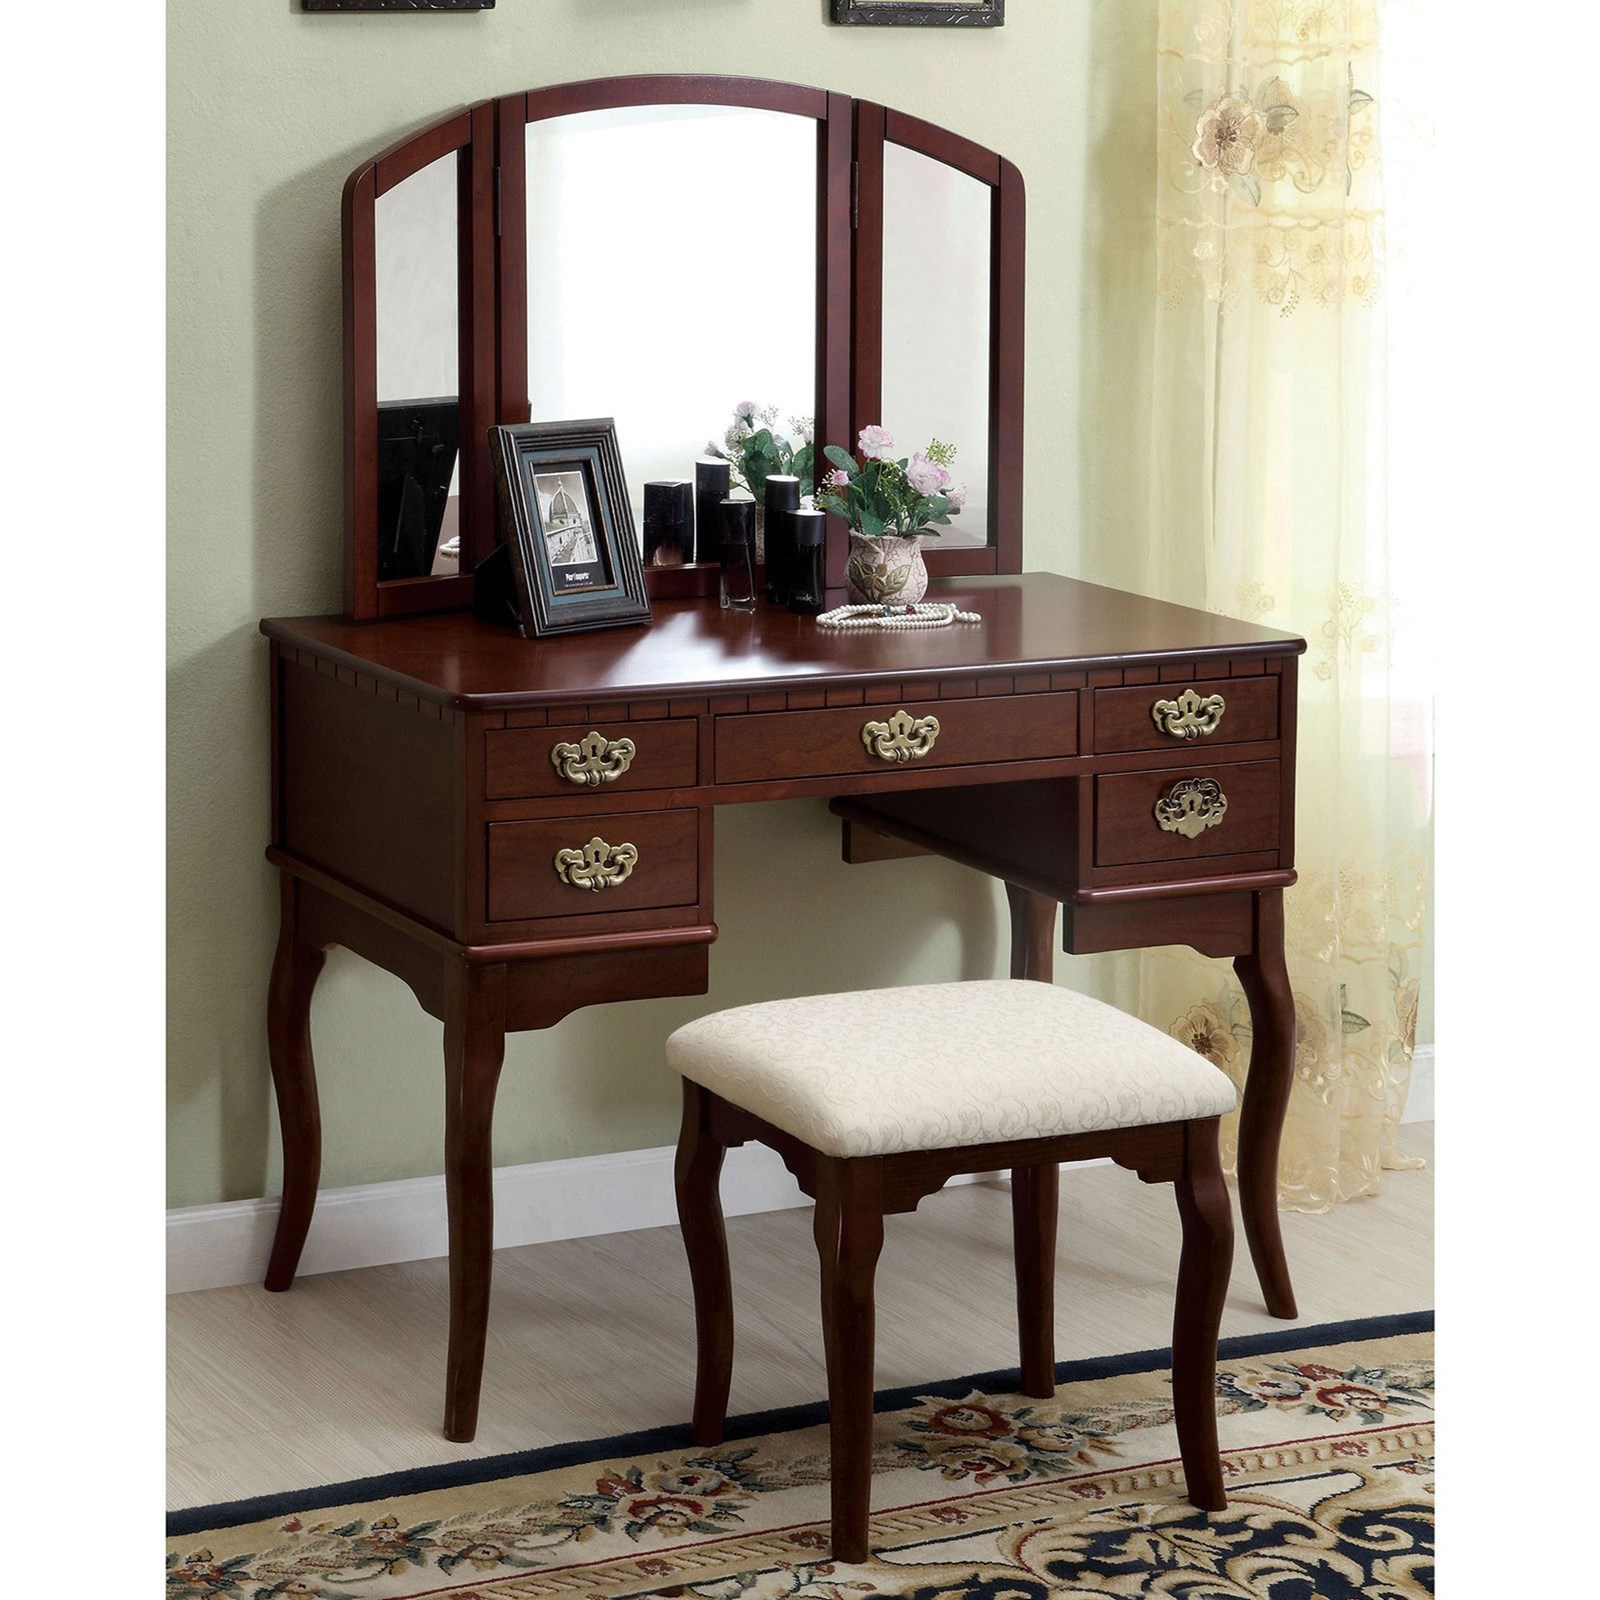 Ashland Vanity Table at Household Furniture